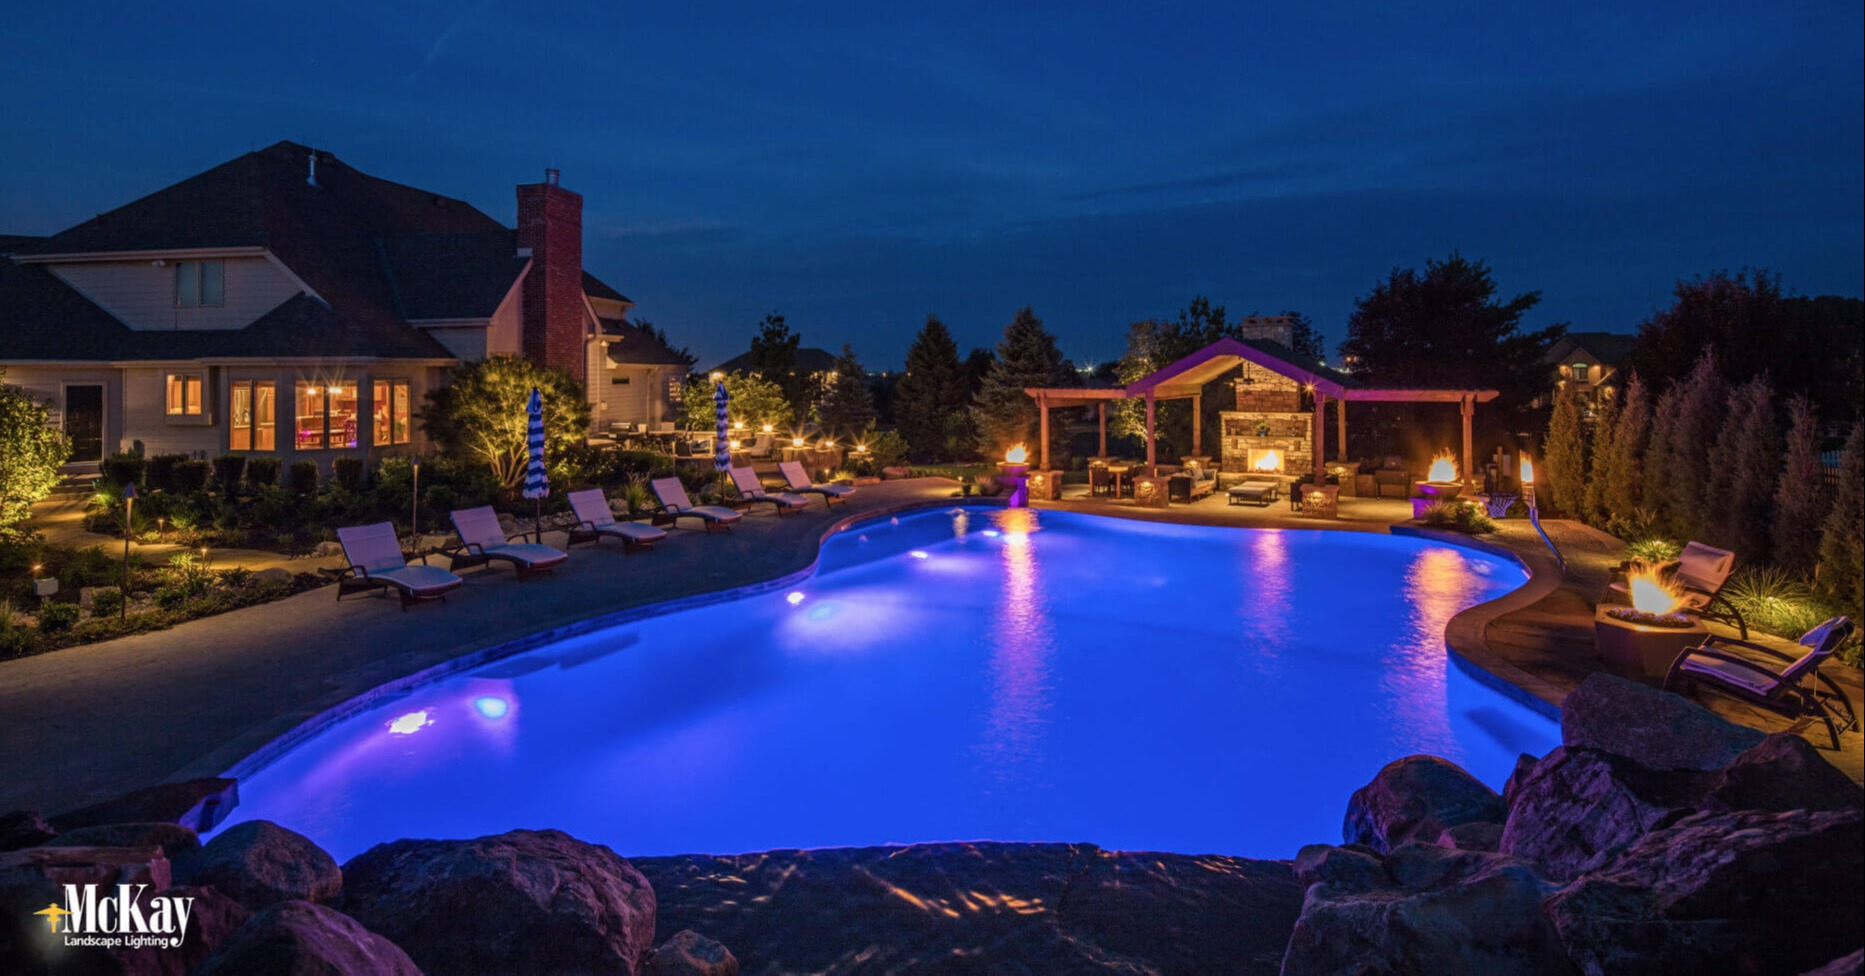 Pool Lighting Increase Safety And Create A Resort Style Oasis